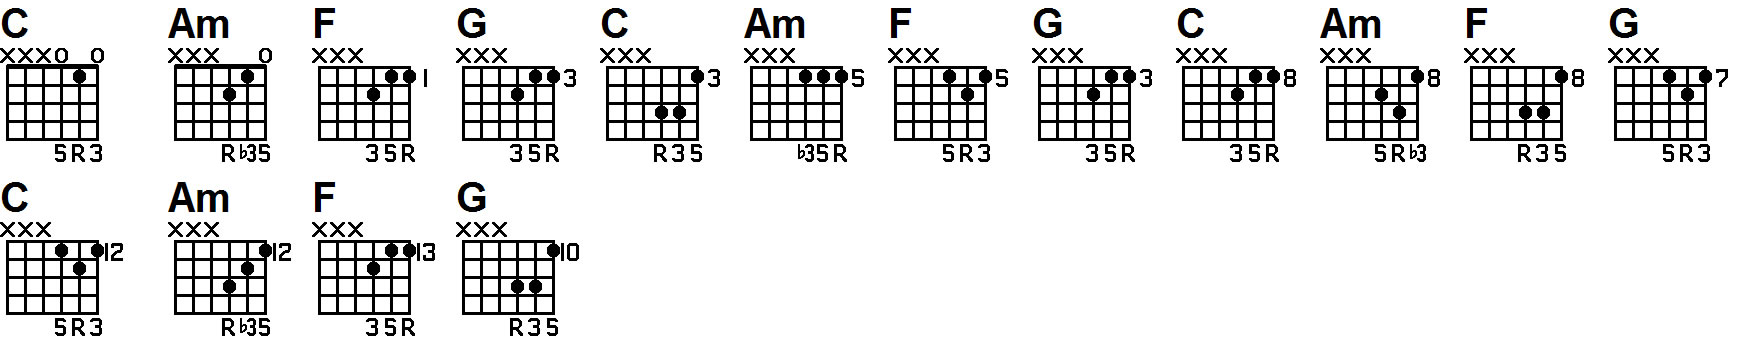 guitar lesson on triad 1645 chords